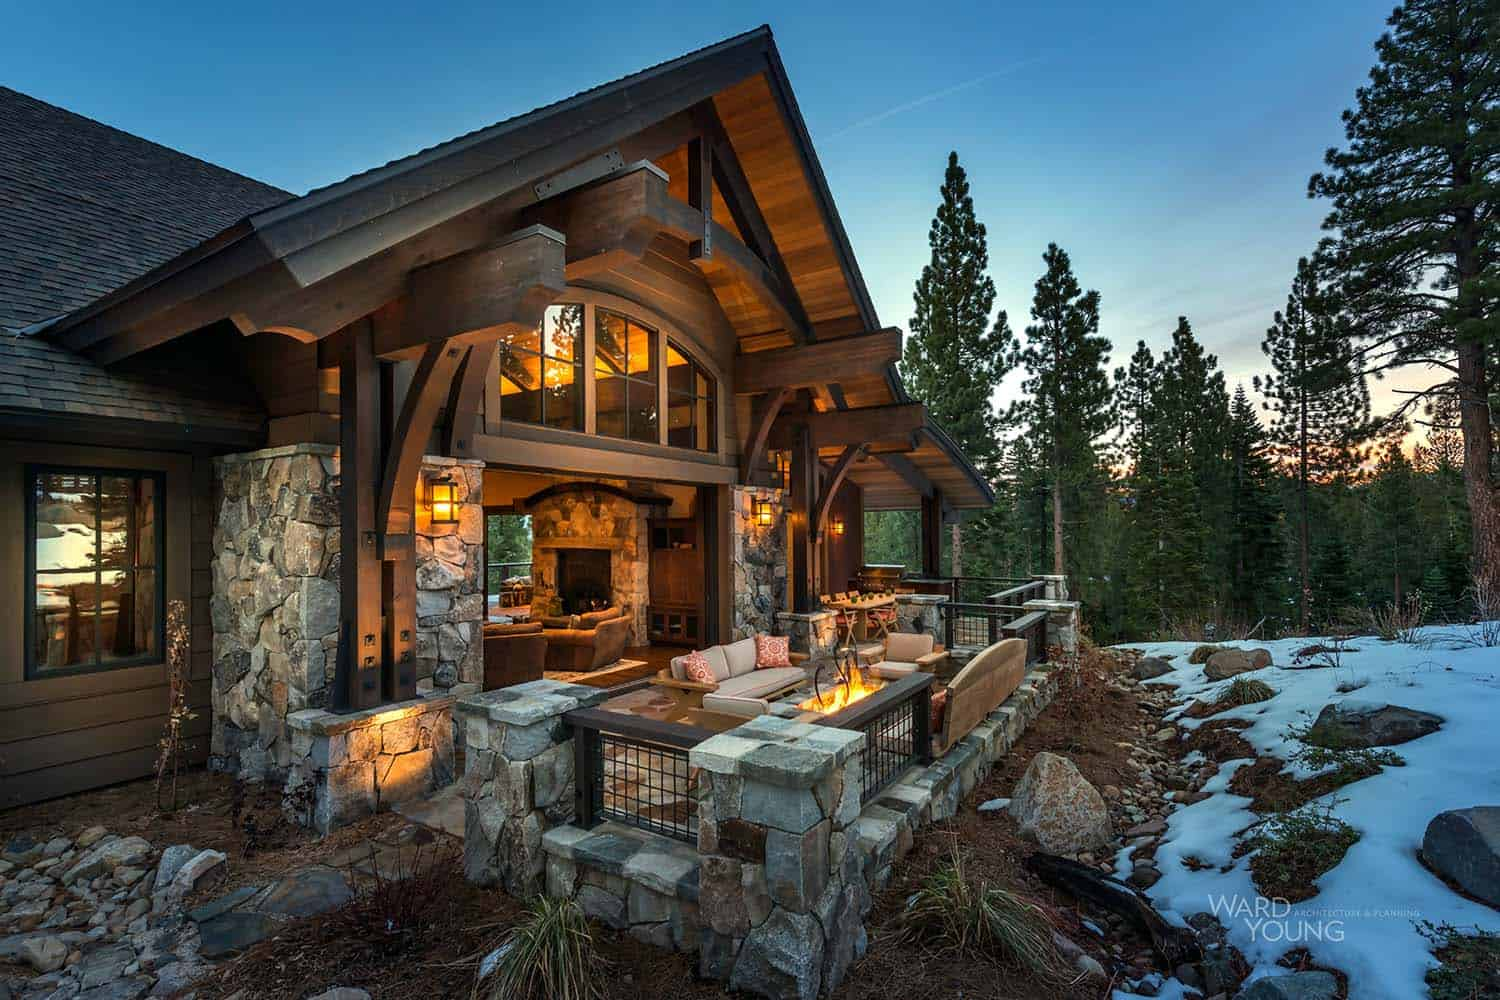 Lodge Style Home Blends Rustic Contemporary In Martis Camp